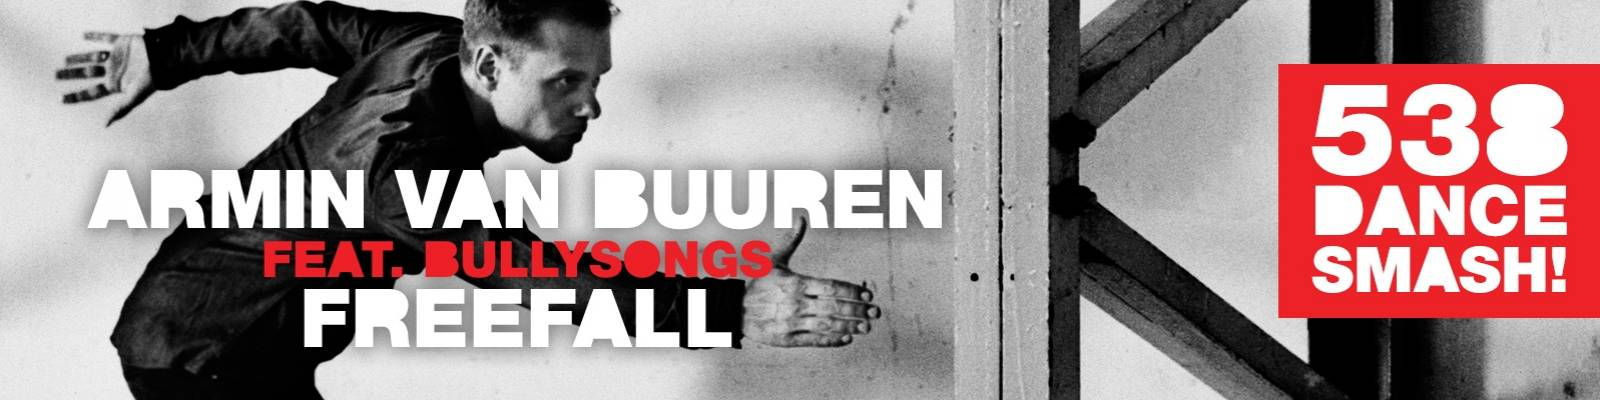 Armin van Buuren feat. BullySongs – 'Freefall' is the new '538 Dance Smash'!